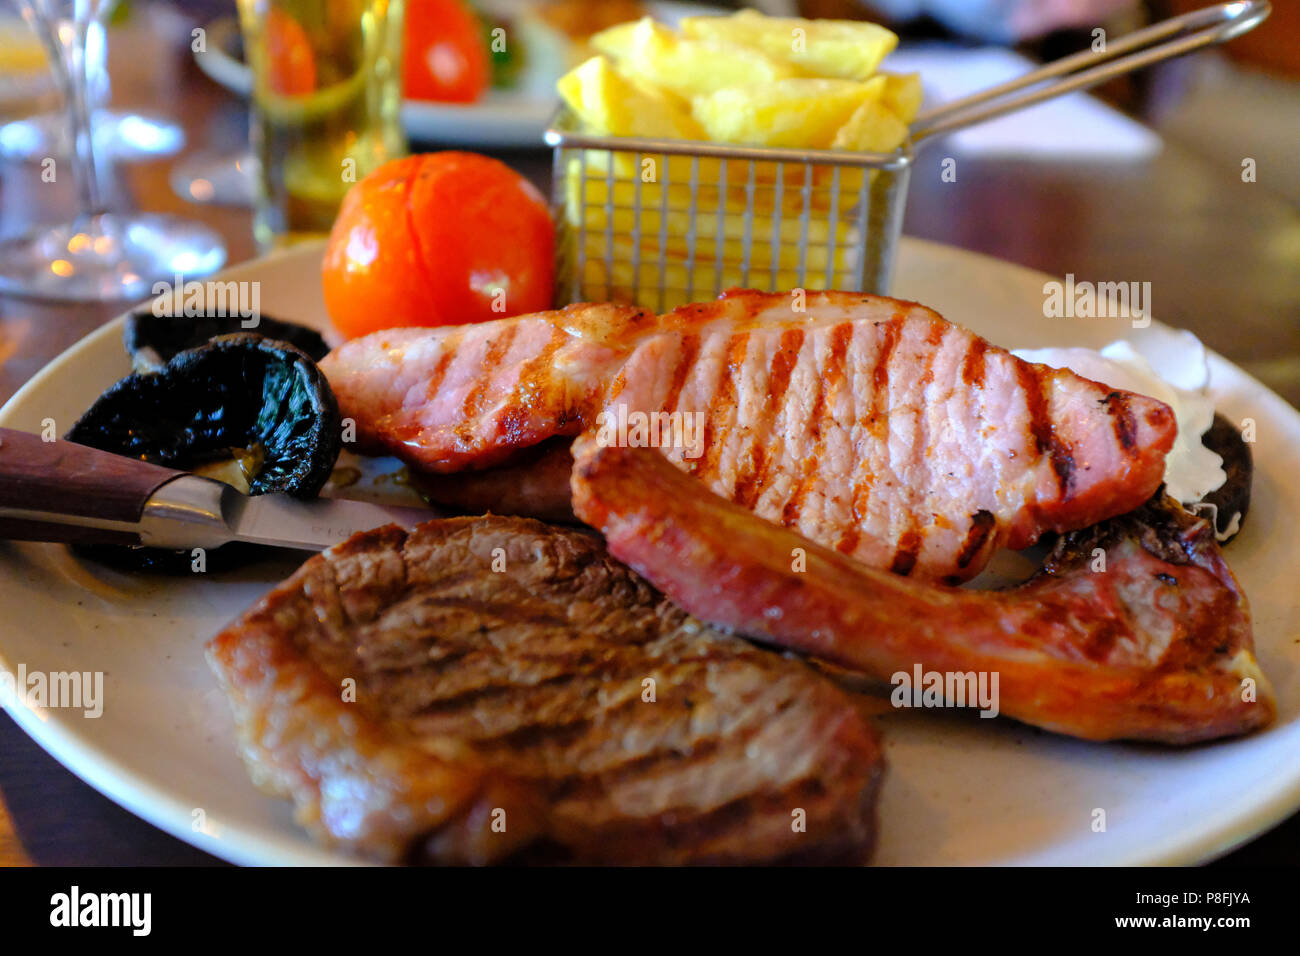 Mixed Grill cooked on a plate - Stock Image